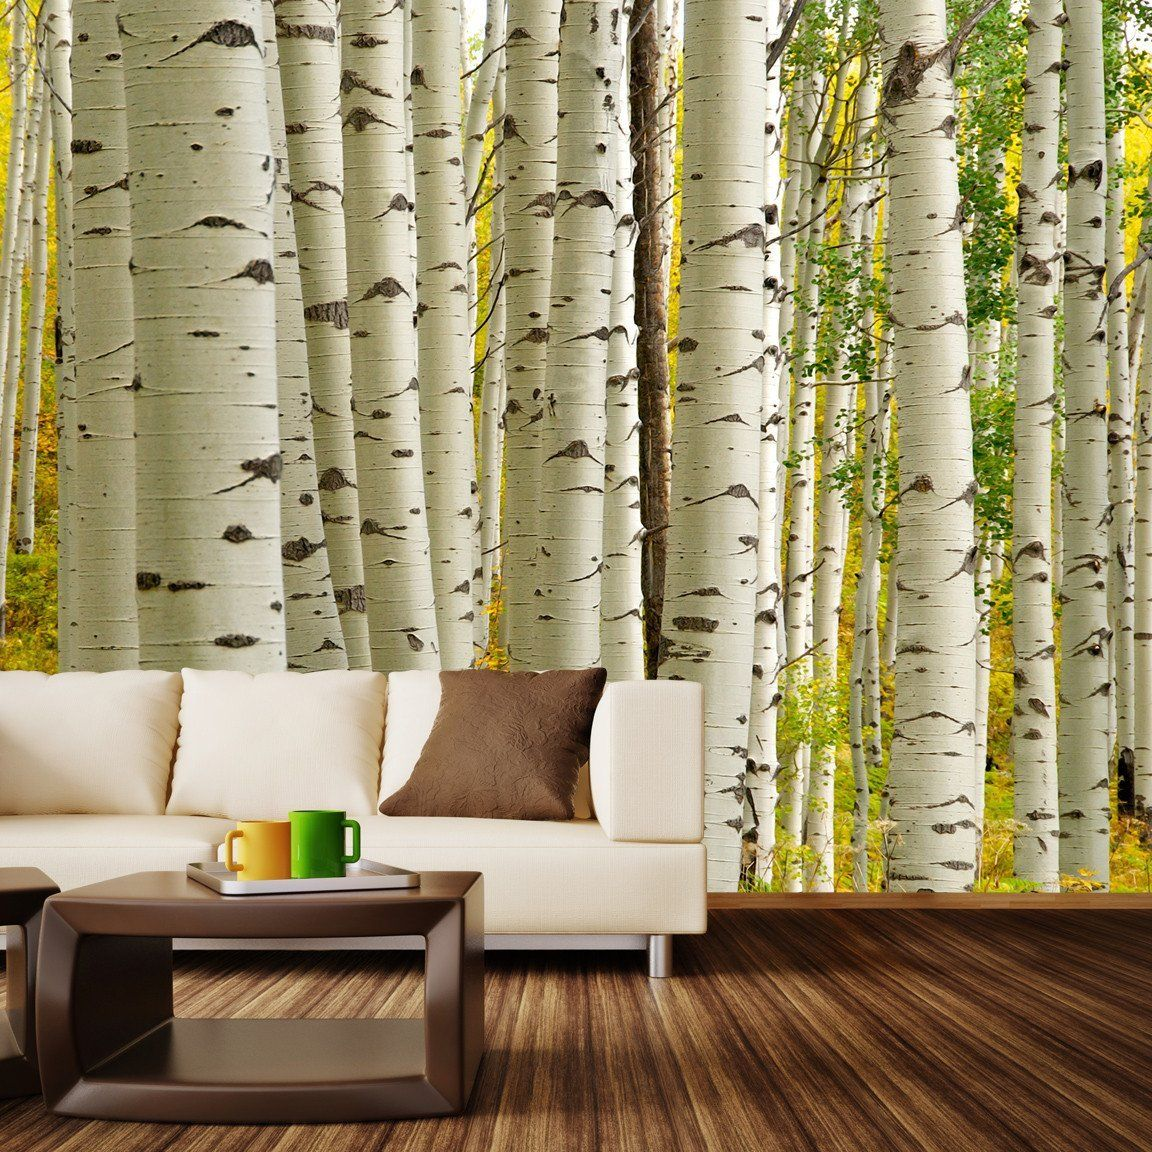 Birch Forest Wall Mural Decal 5 Panel